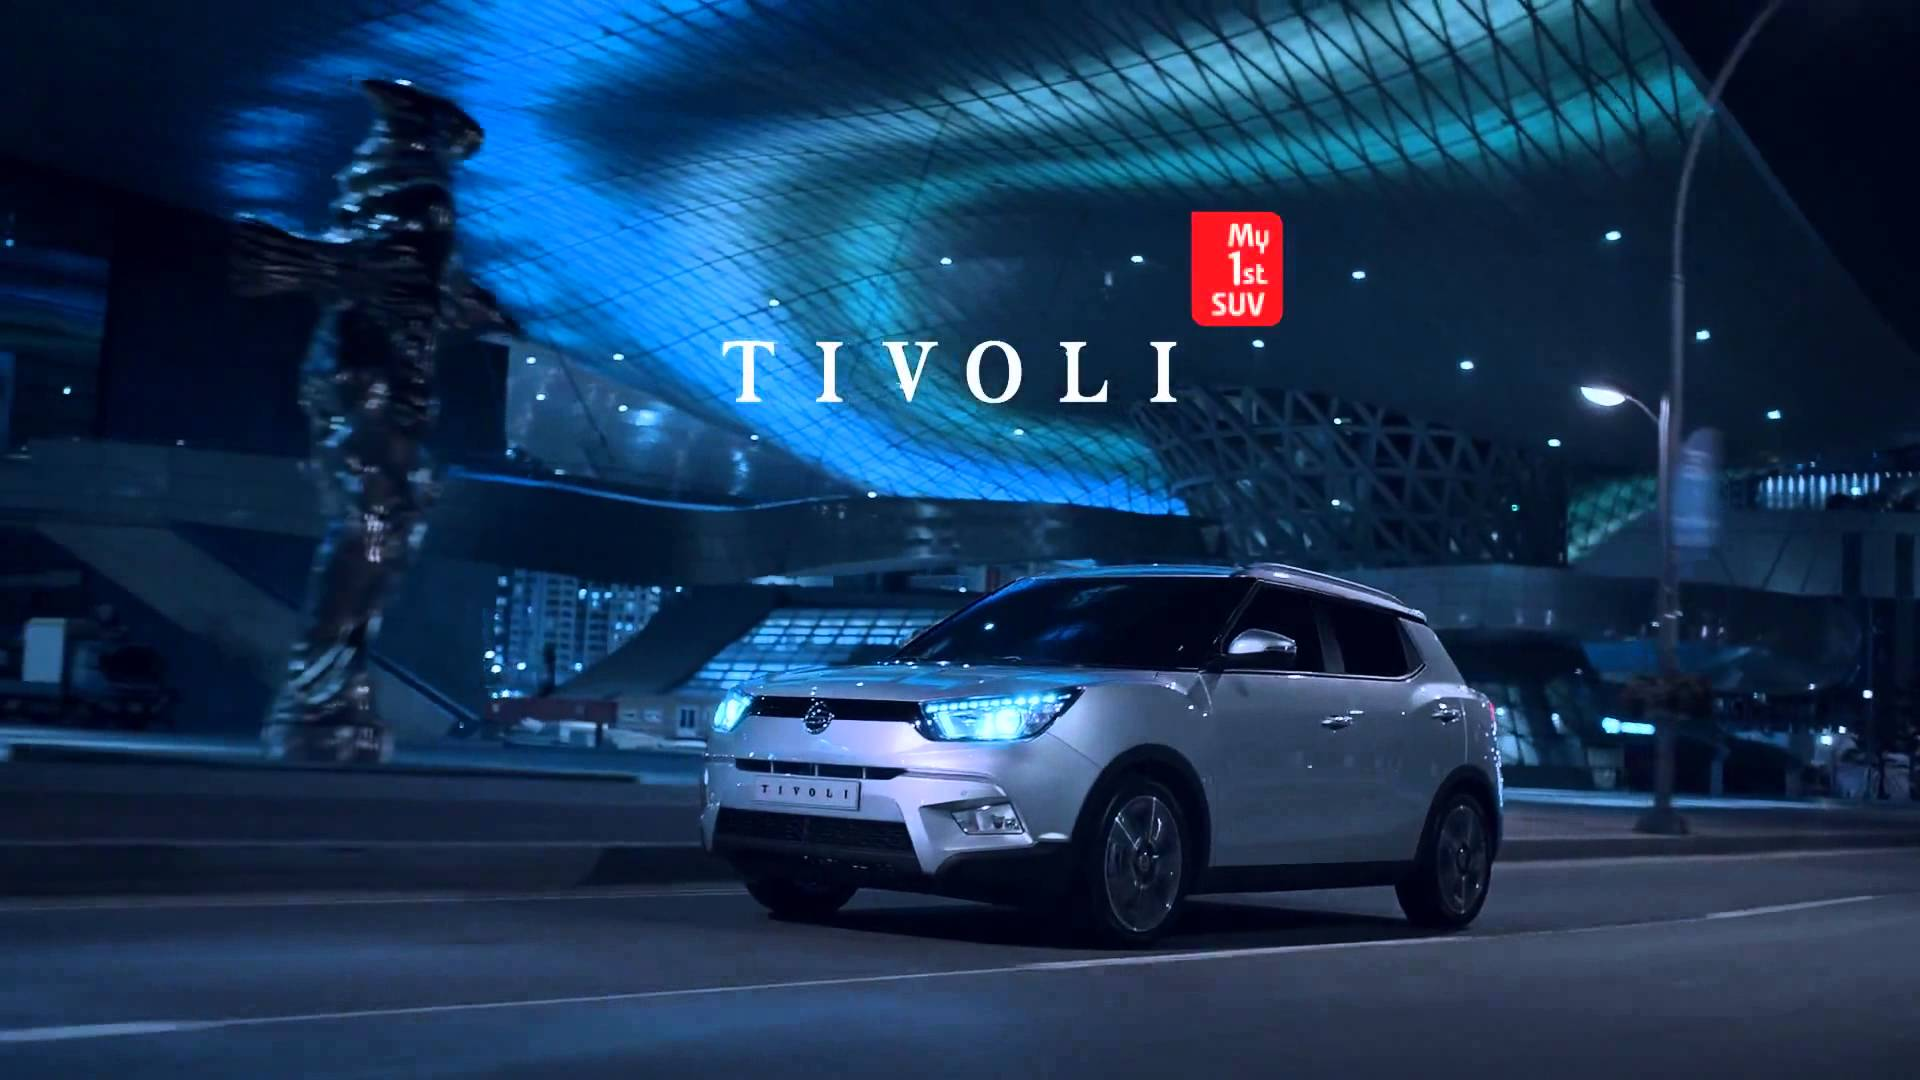 Ssangyong Tivoli HD Wallpapers